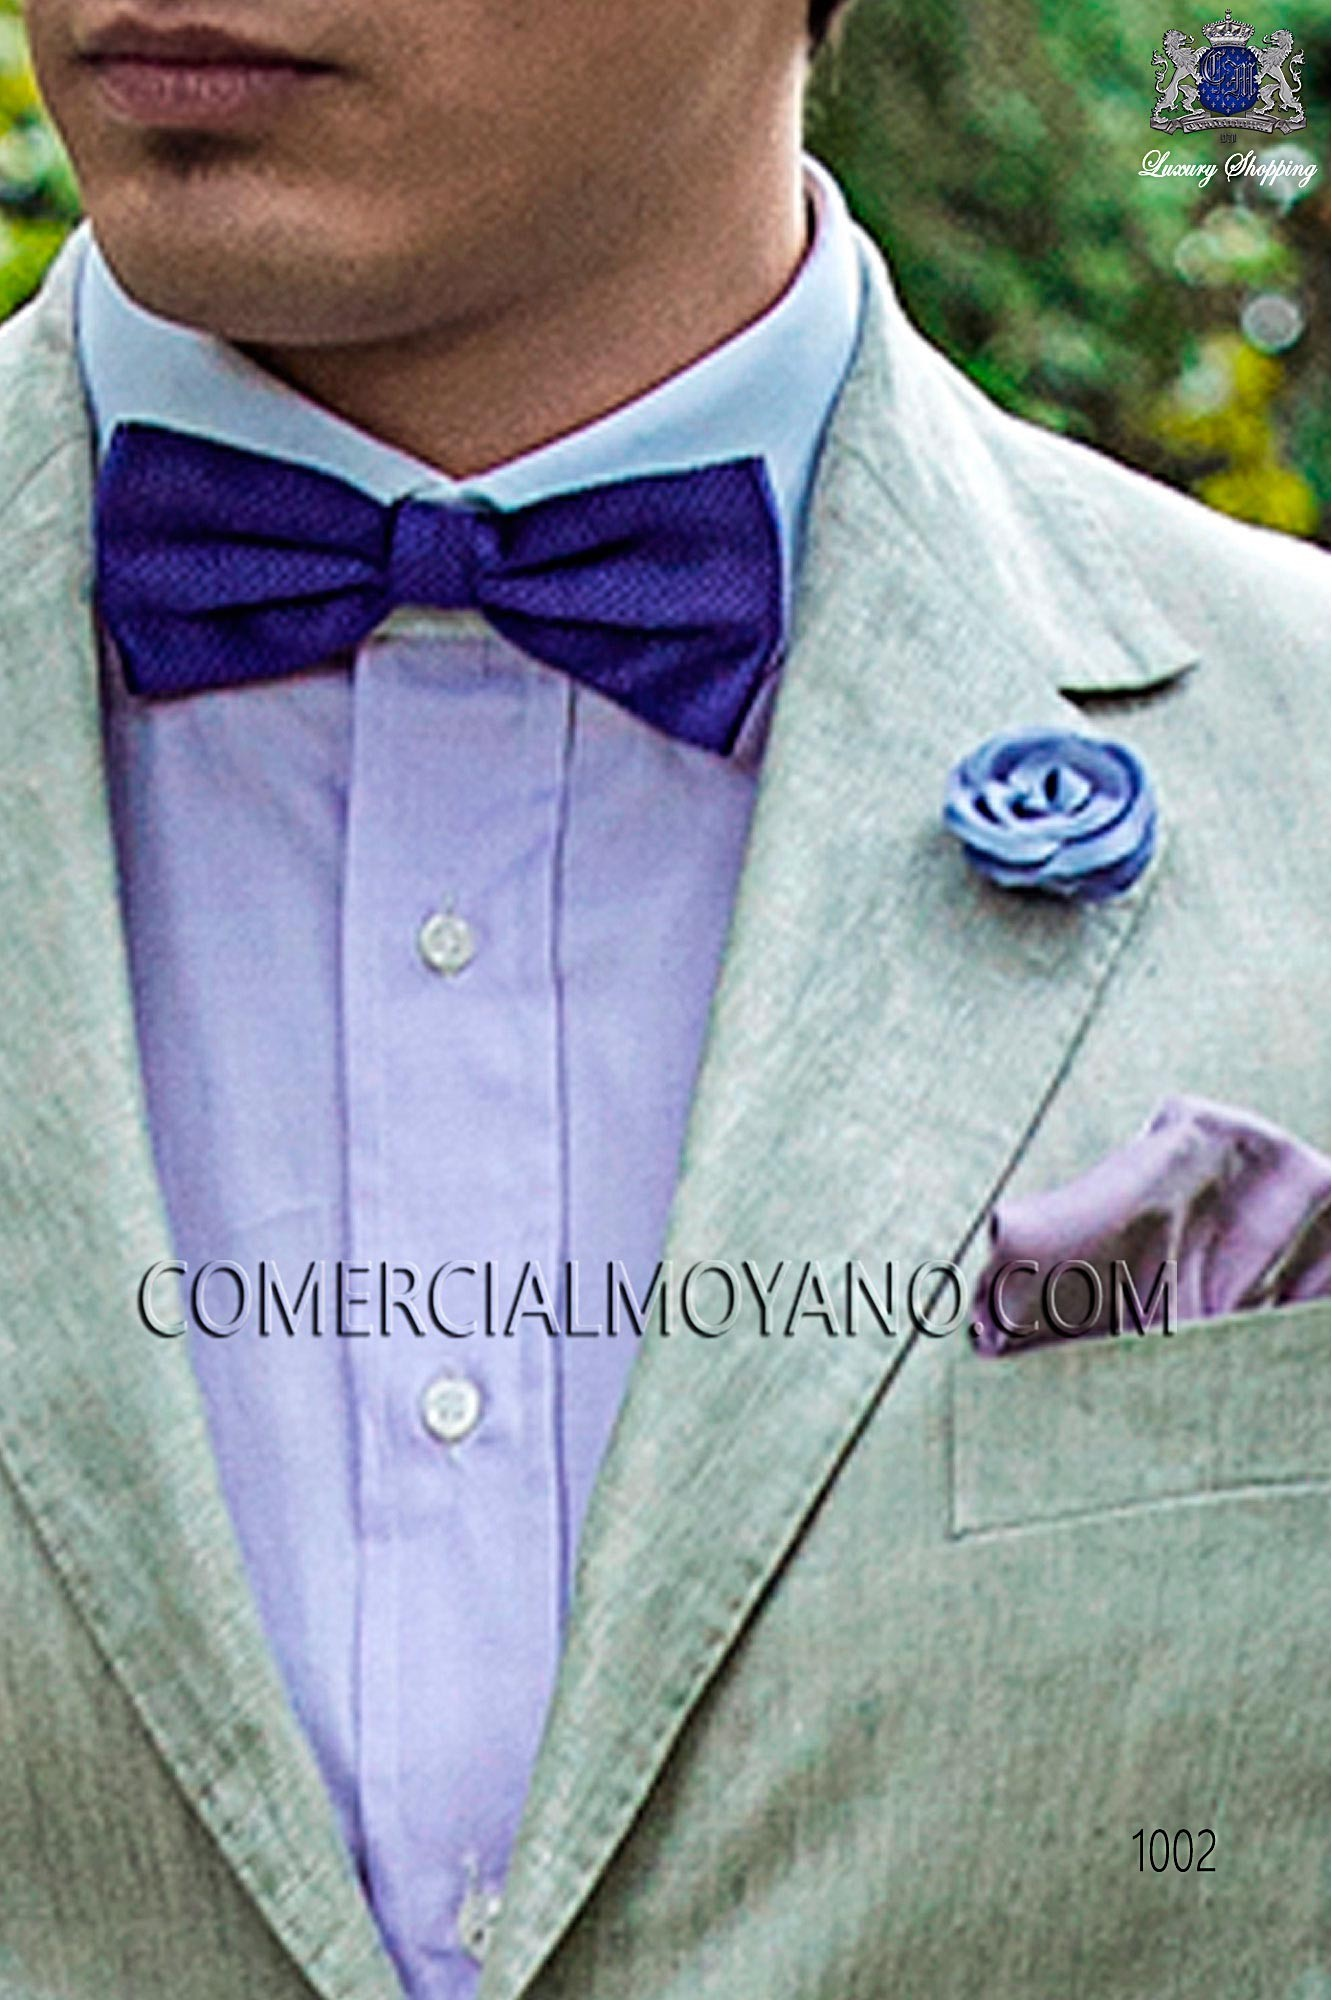 Hipster gray men wedding suit, model: 1002 Ottavio Nuccio Gala ...